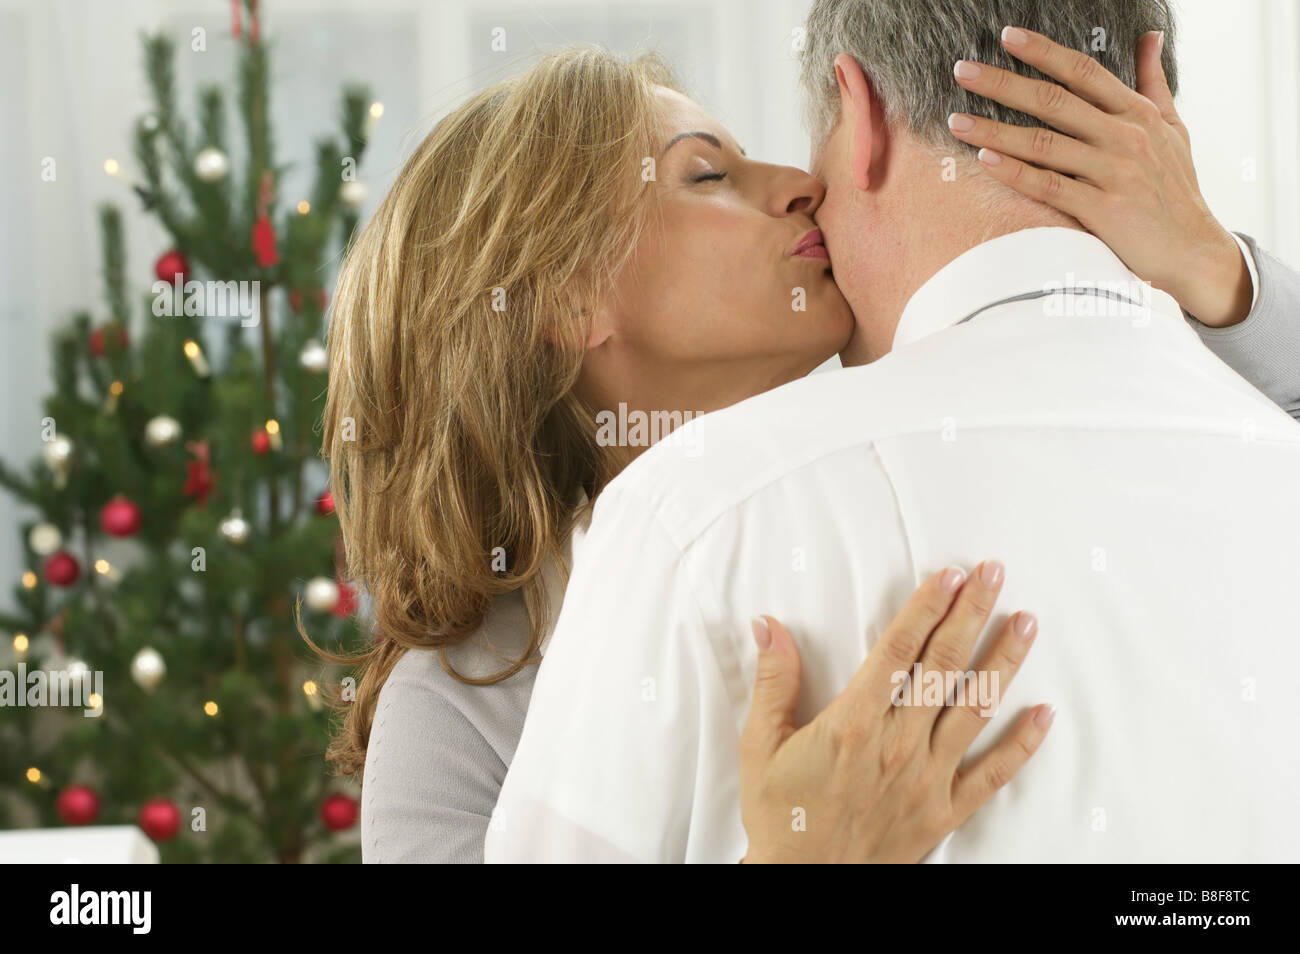 Kissing couple in front of a Christmas tree - Stock Image